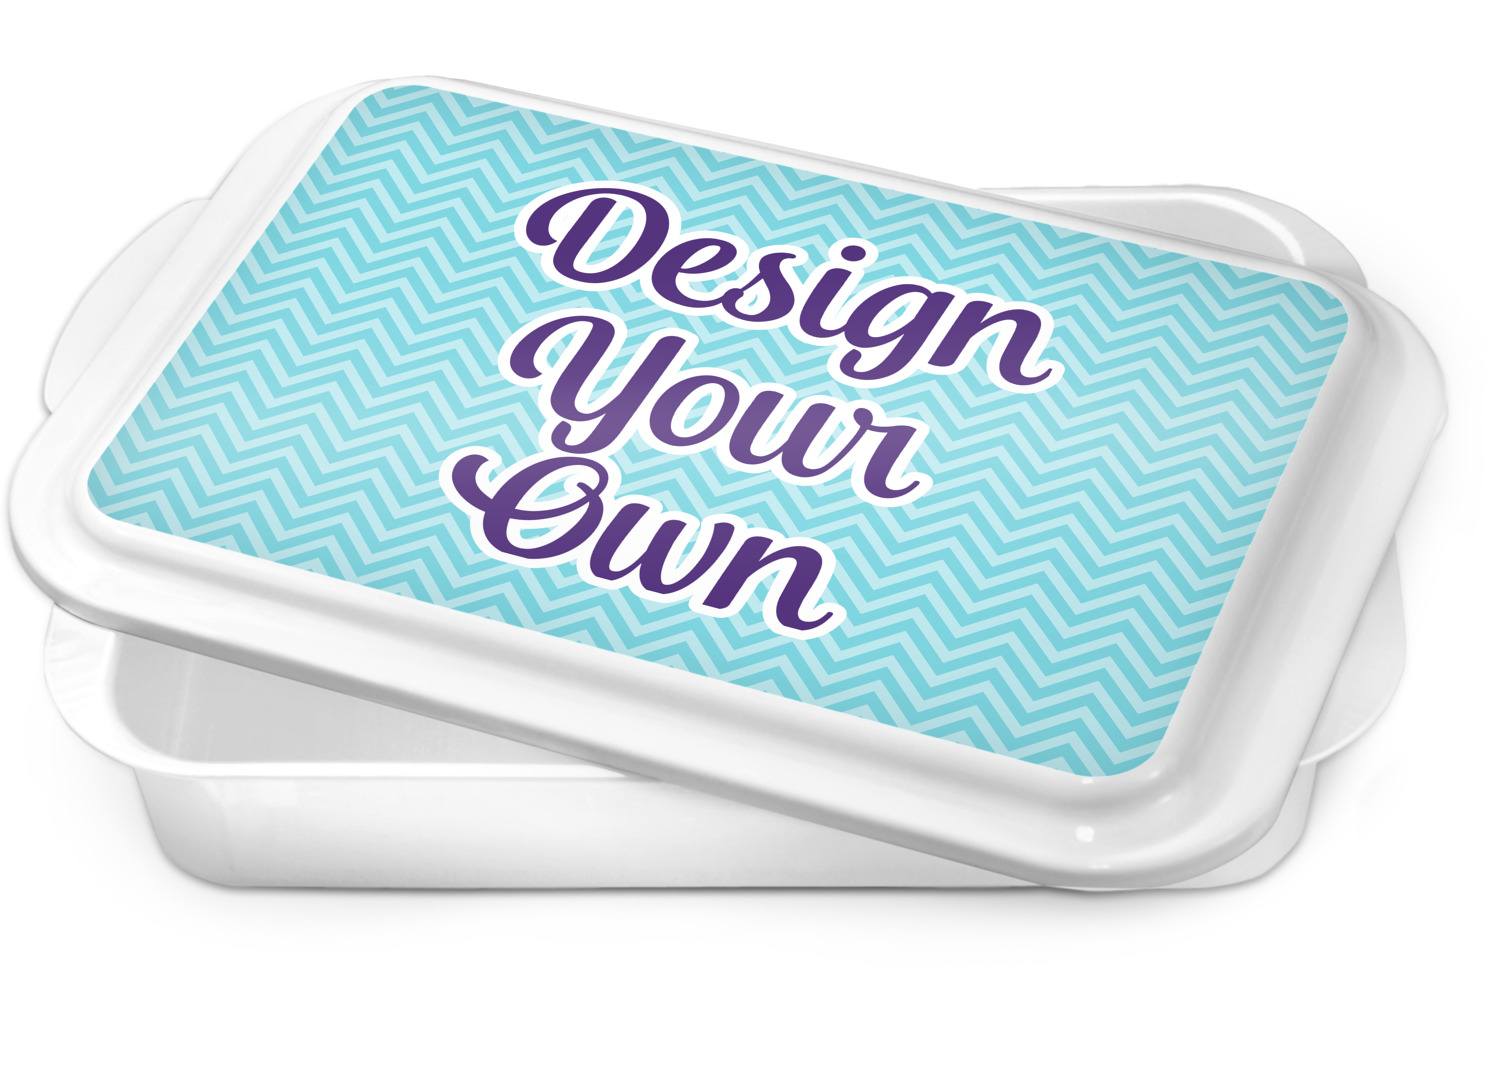 Cake Design Your Own : Design Your Own Cake Pan (Personalized) - YouCustomizeIt